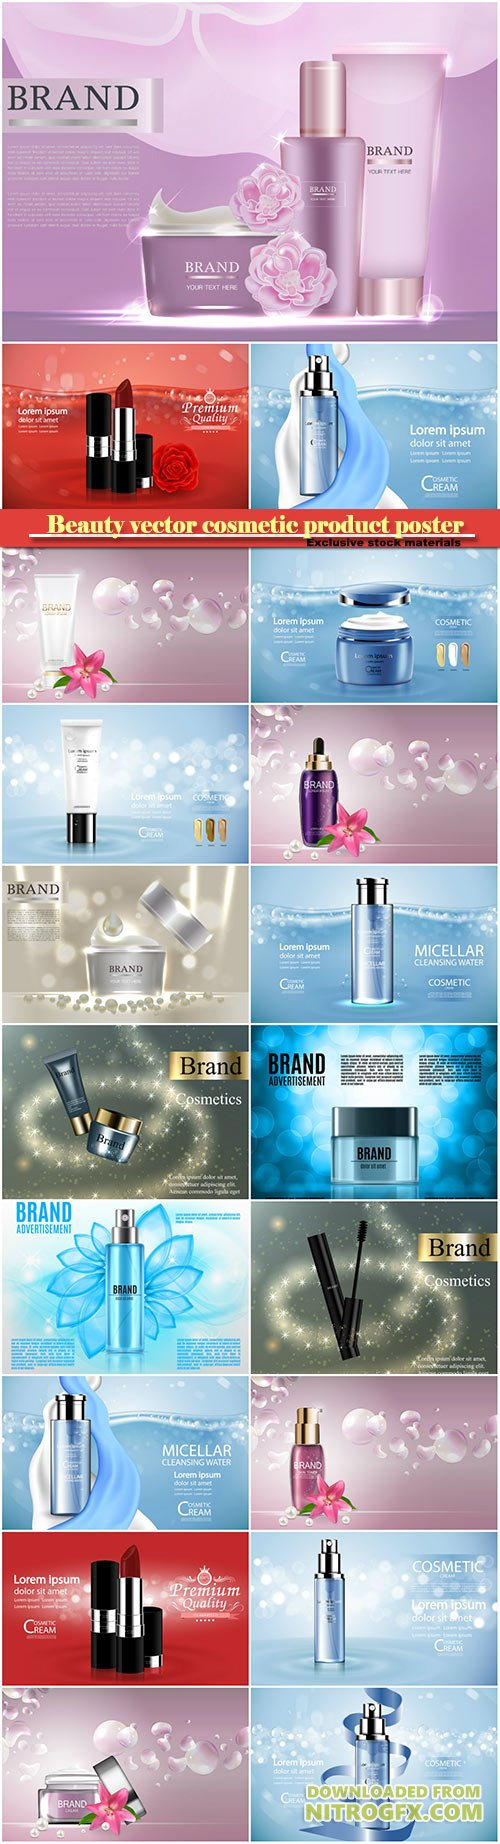 Beauty vector cosmetic product poster # 14